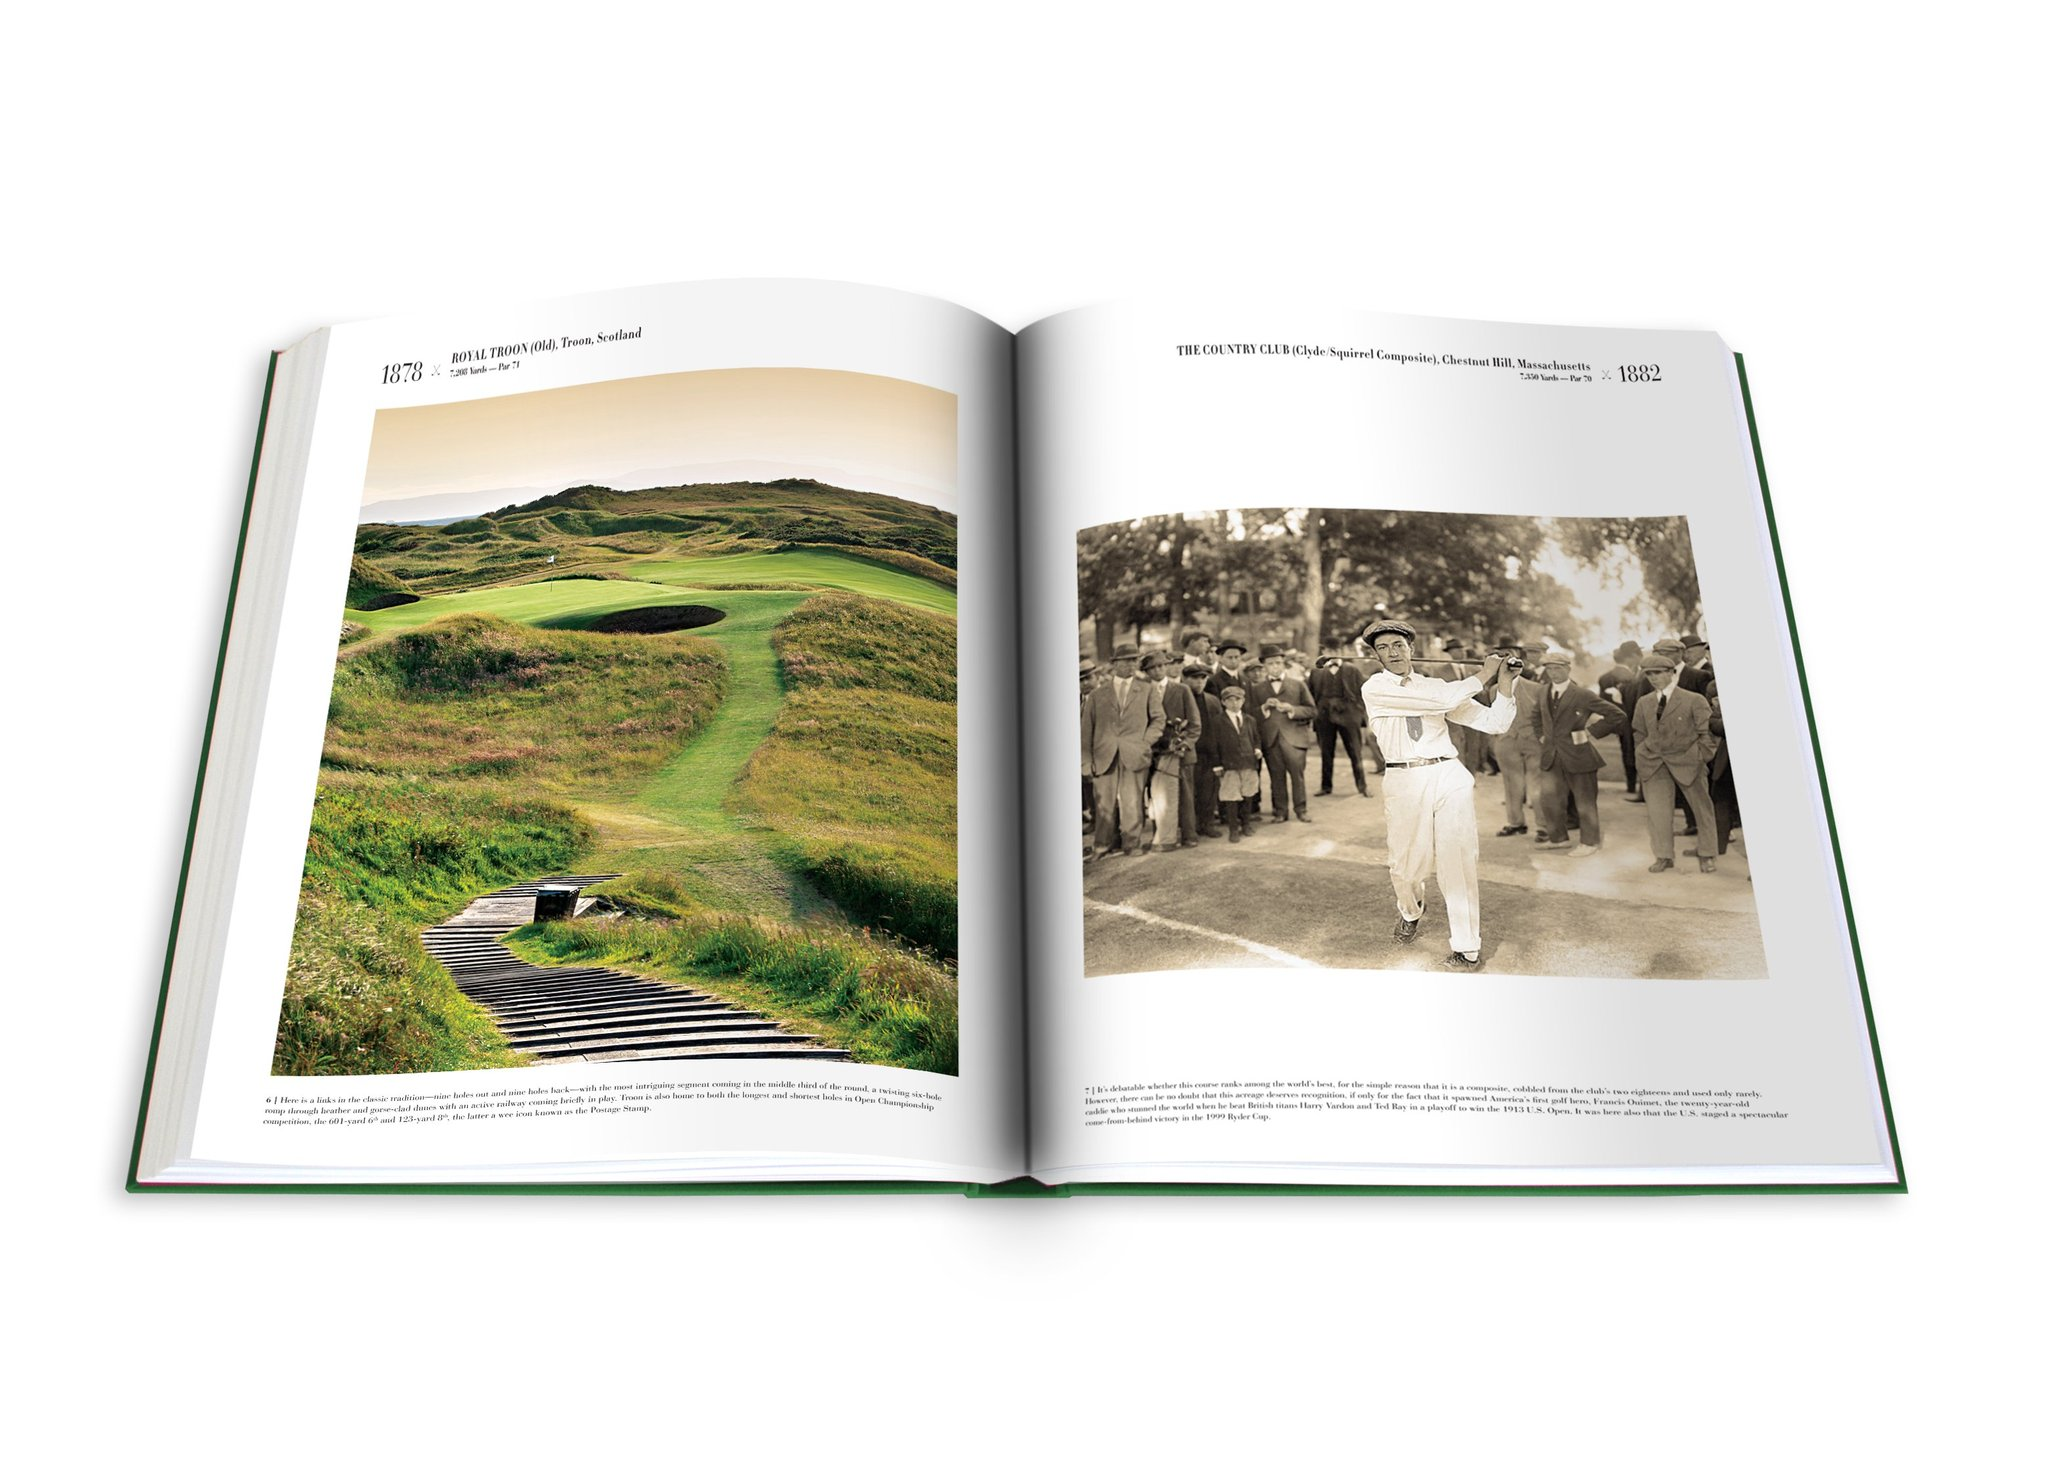 Golf The Impossible Collection Book | Father's Day Gift Guide 2020 on Rhyme & Reason